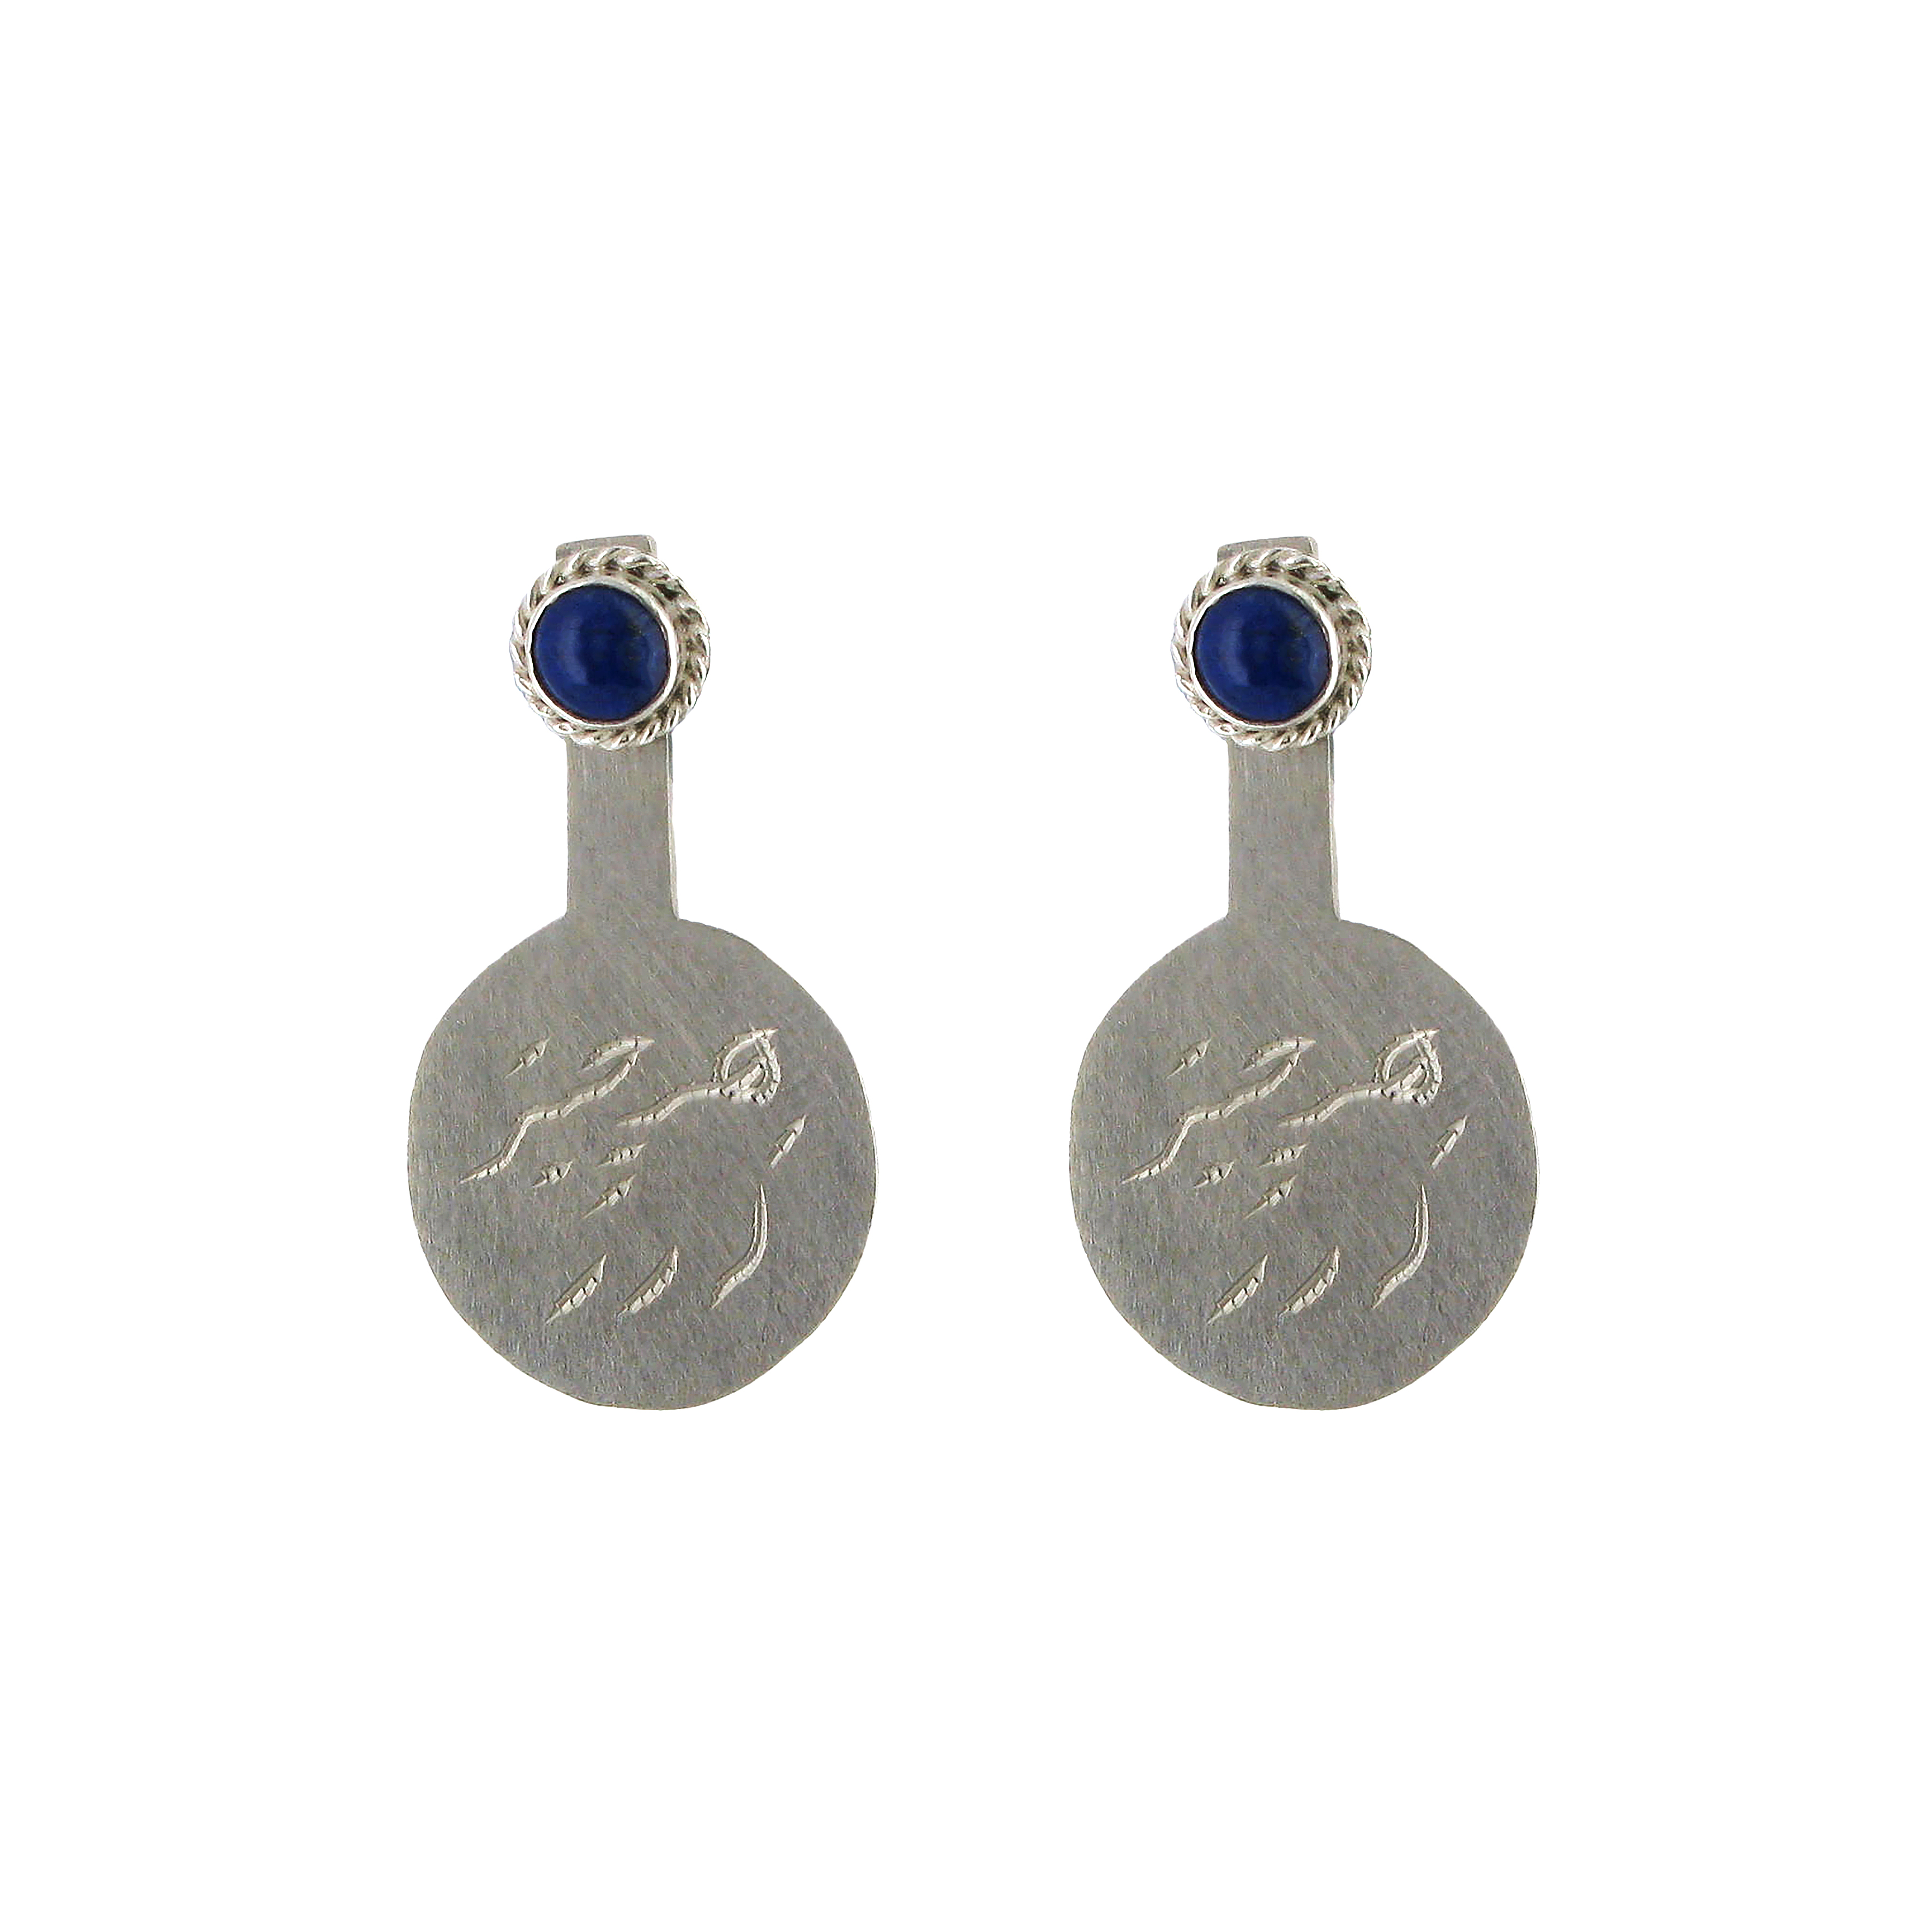 Rumi silver and lapis earrings